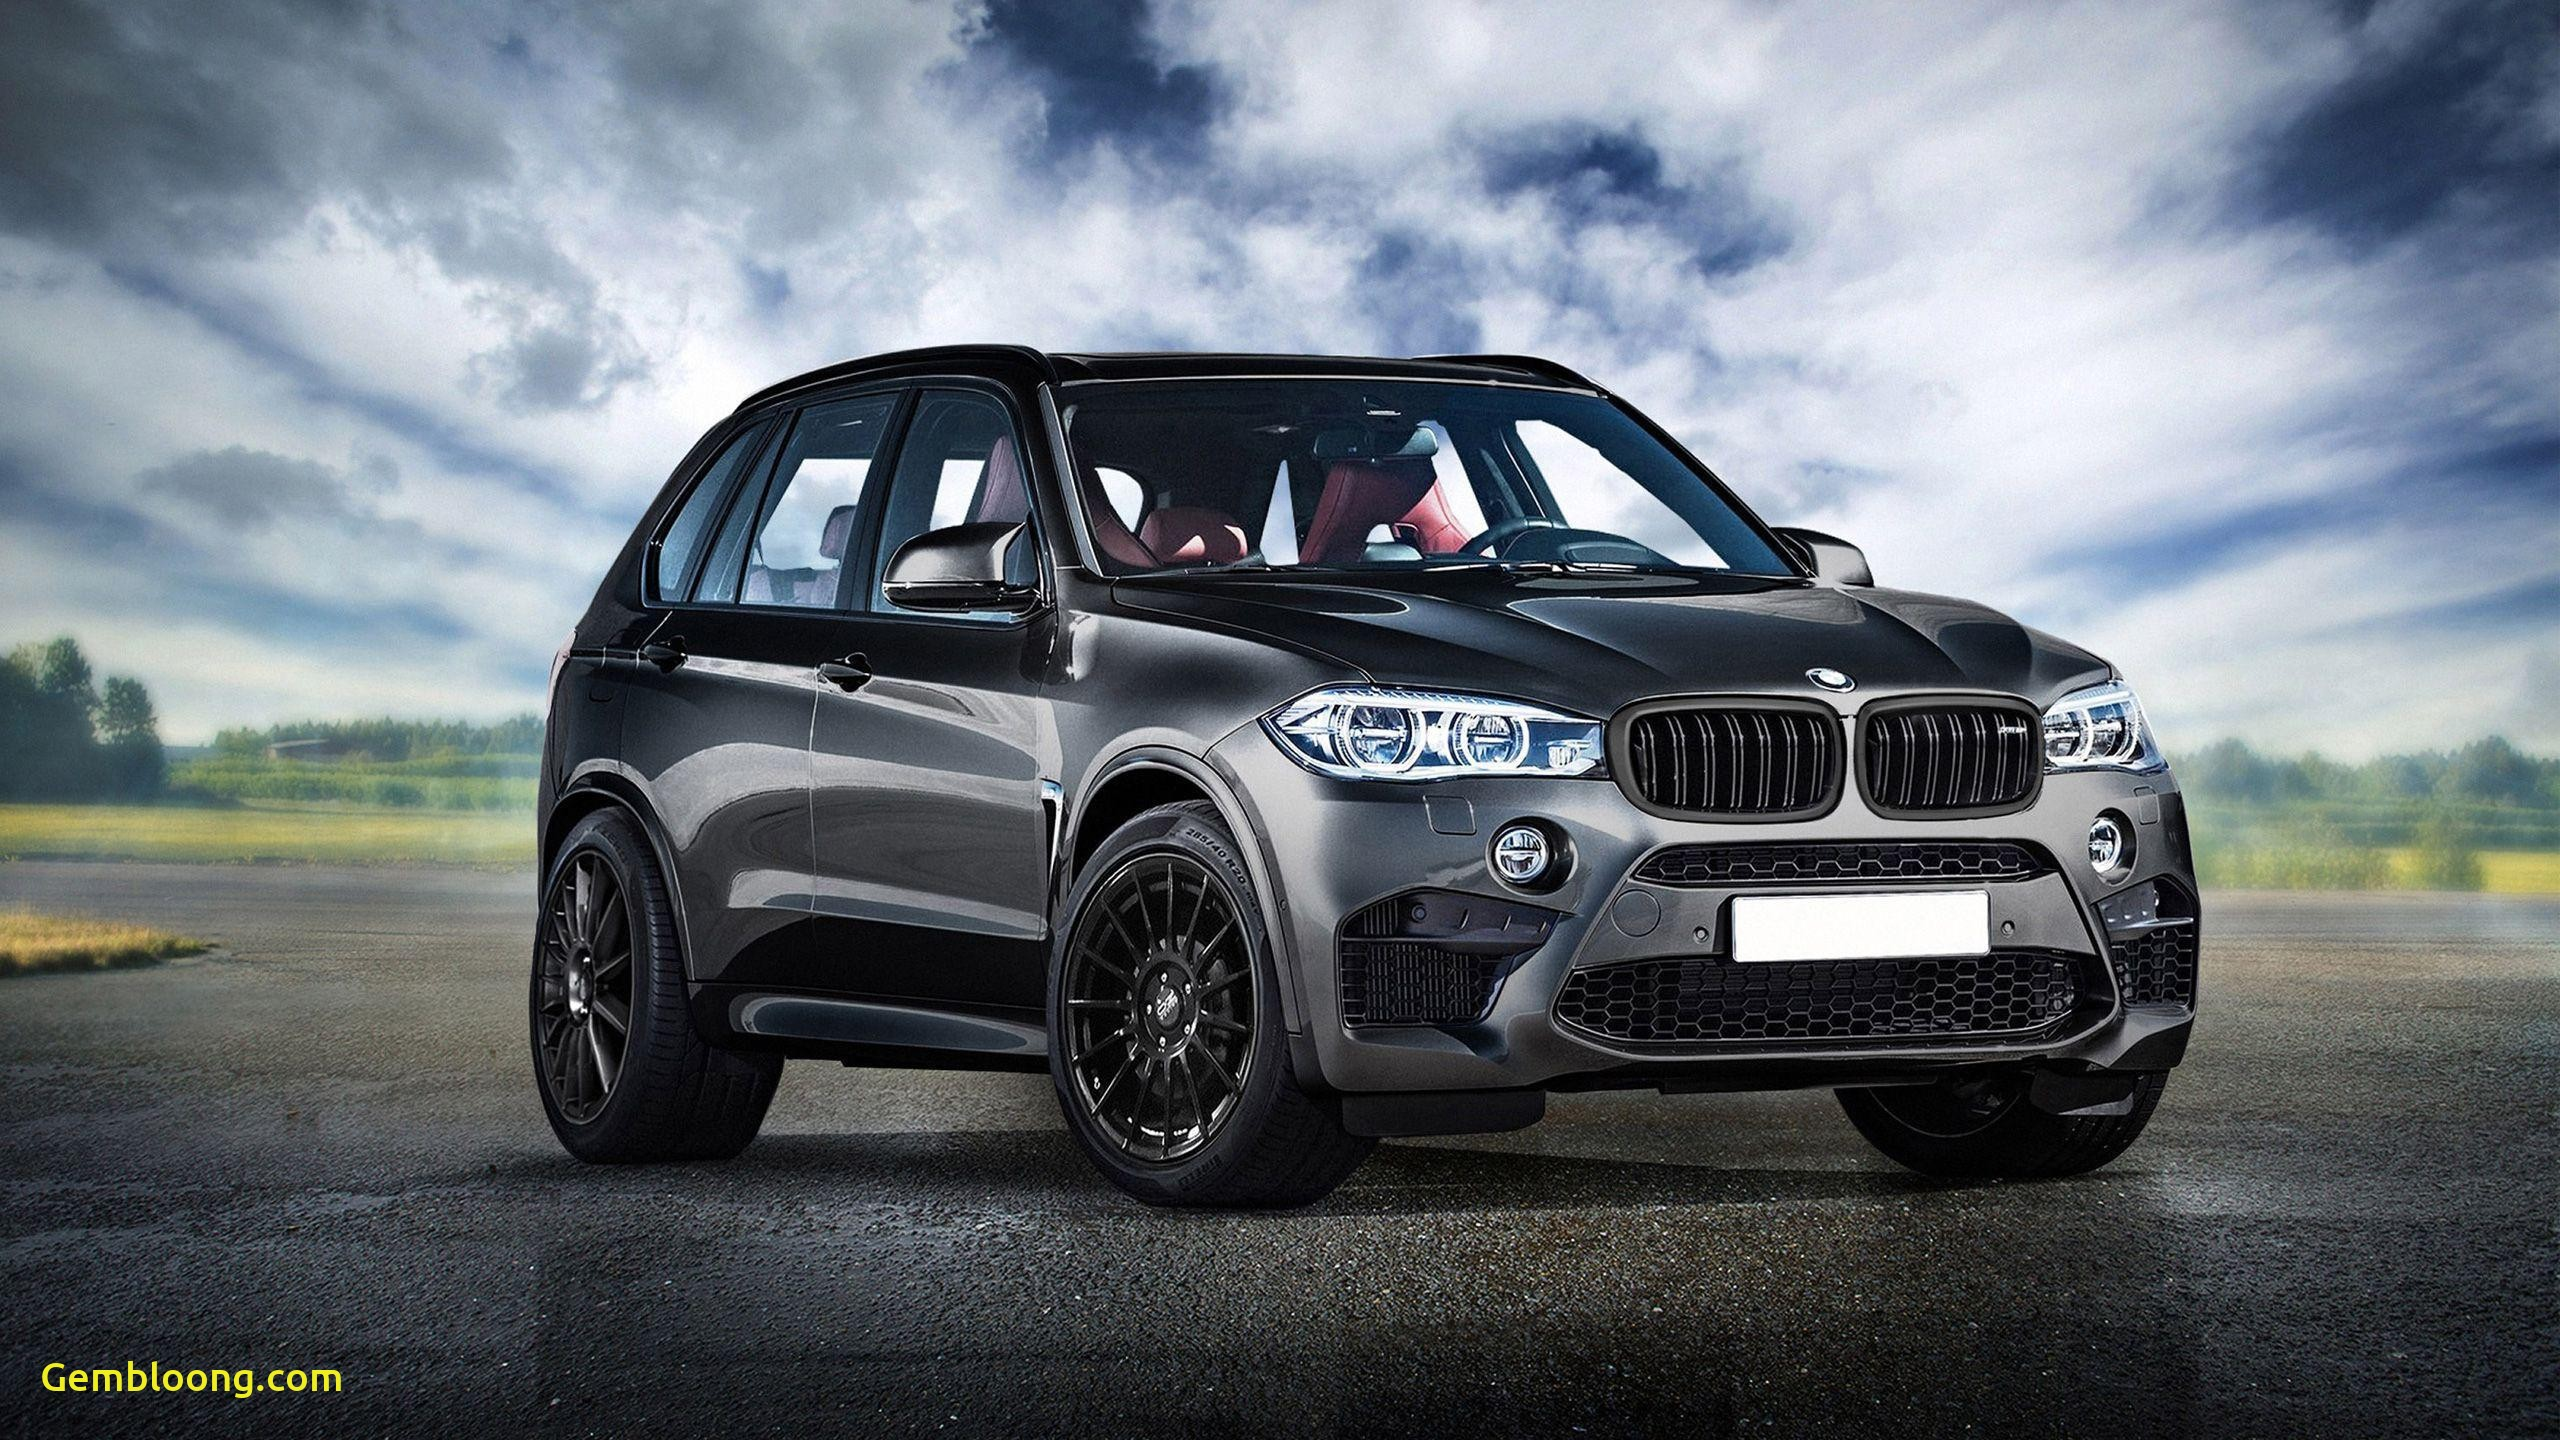 134 2016 alpha n performance bmw x5 wallpaper bmw